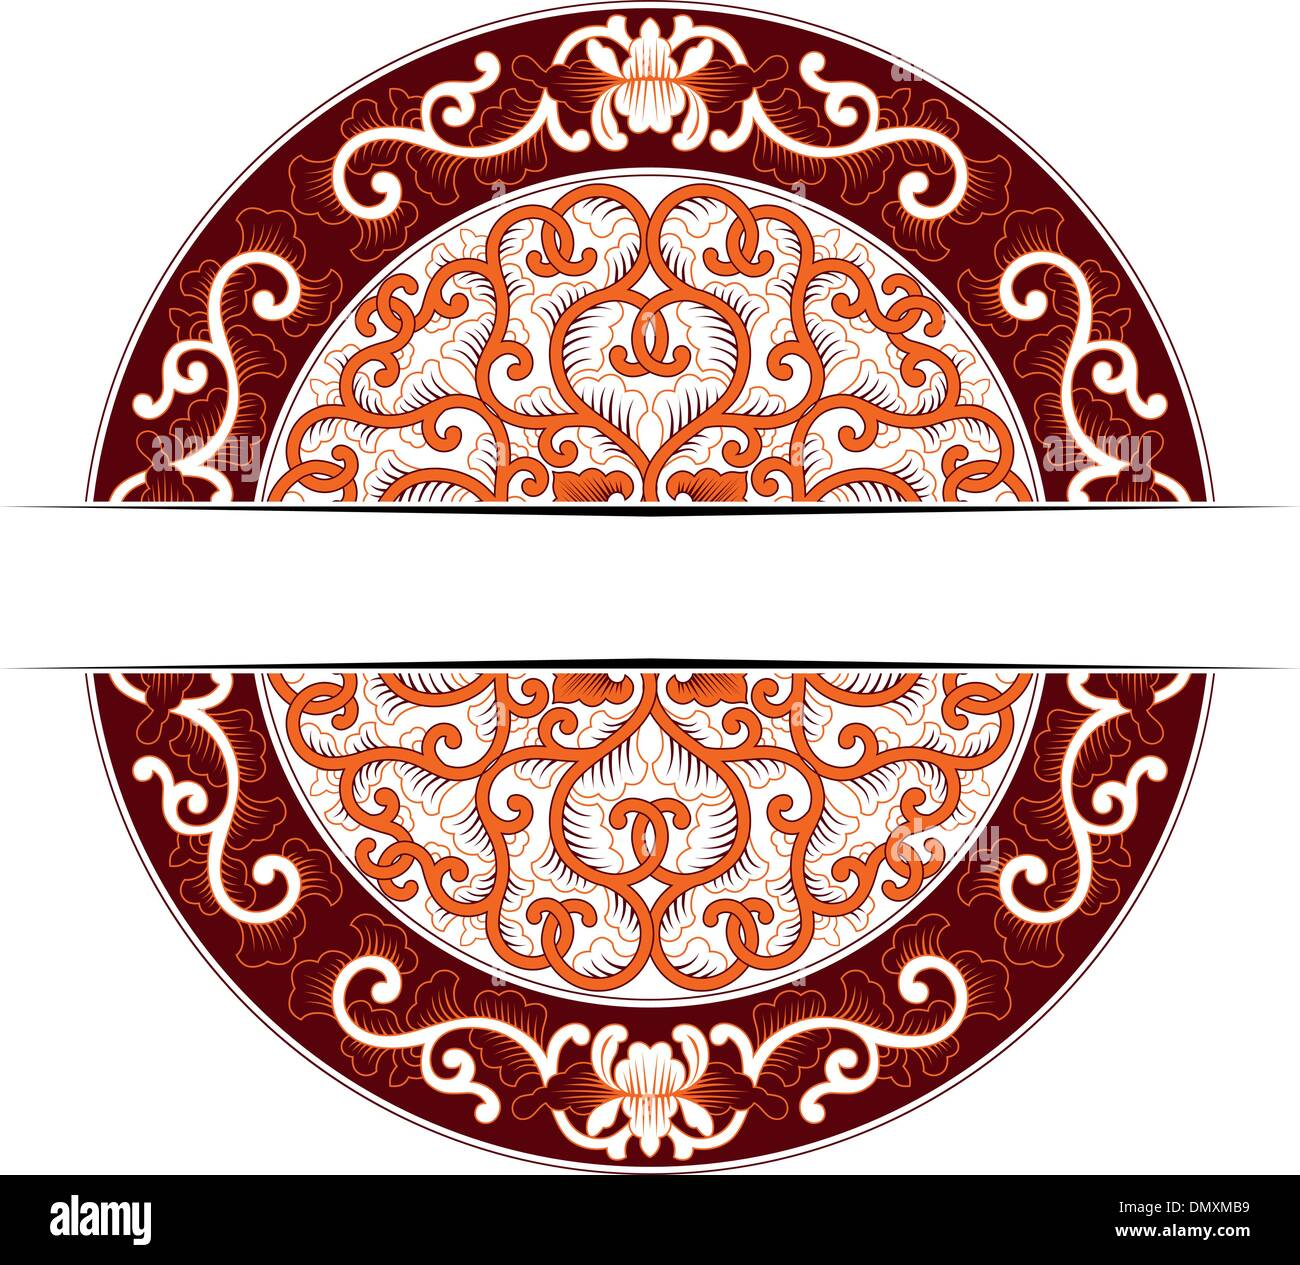 asia circle ornate - Stock Vector